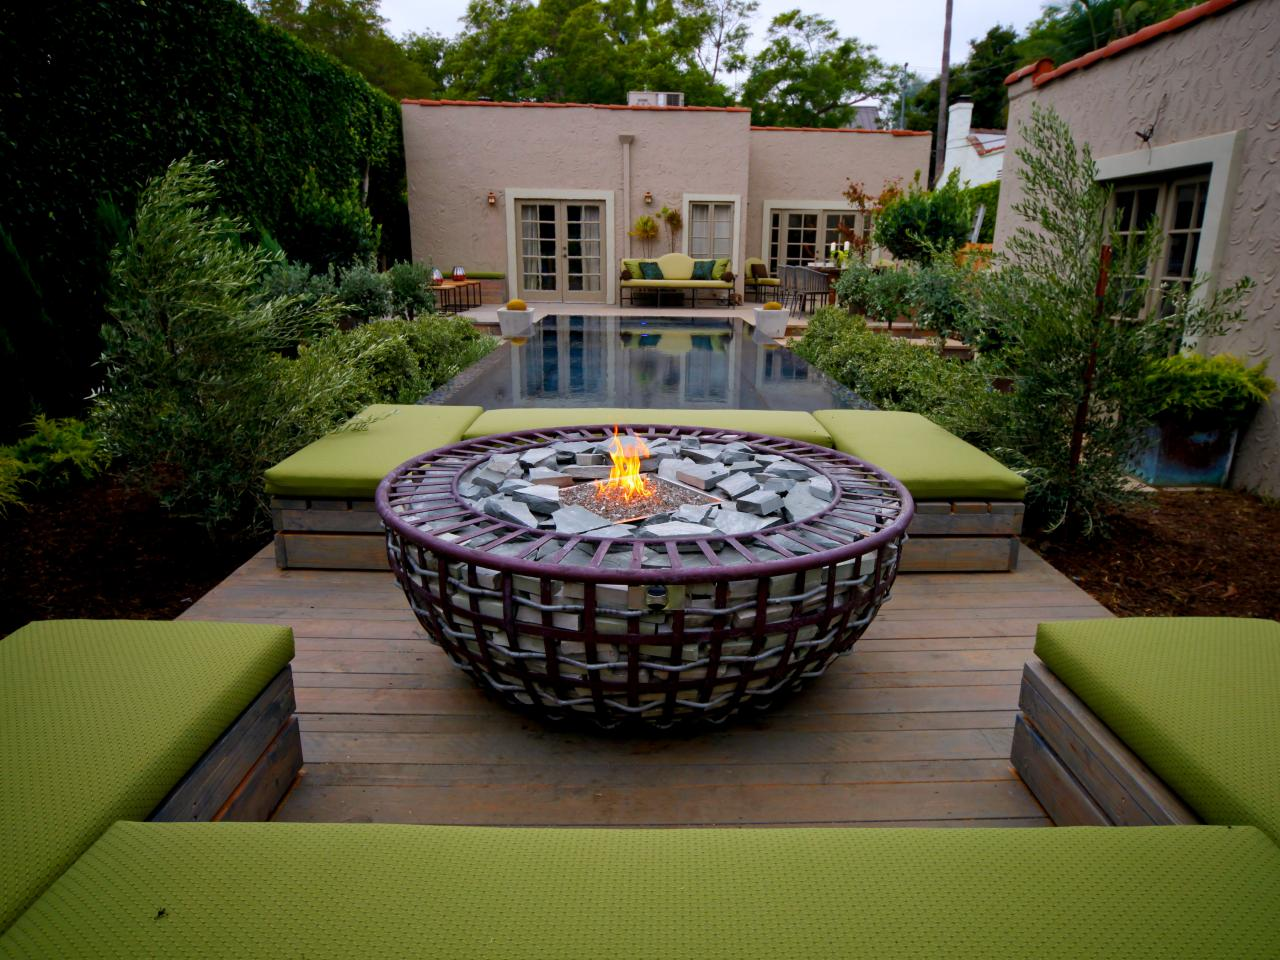 66 fire pit and outdoor fireplace ideas diy network blog for Garden pool haiti